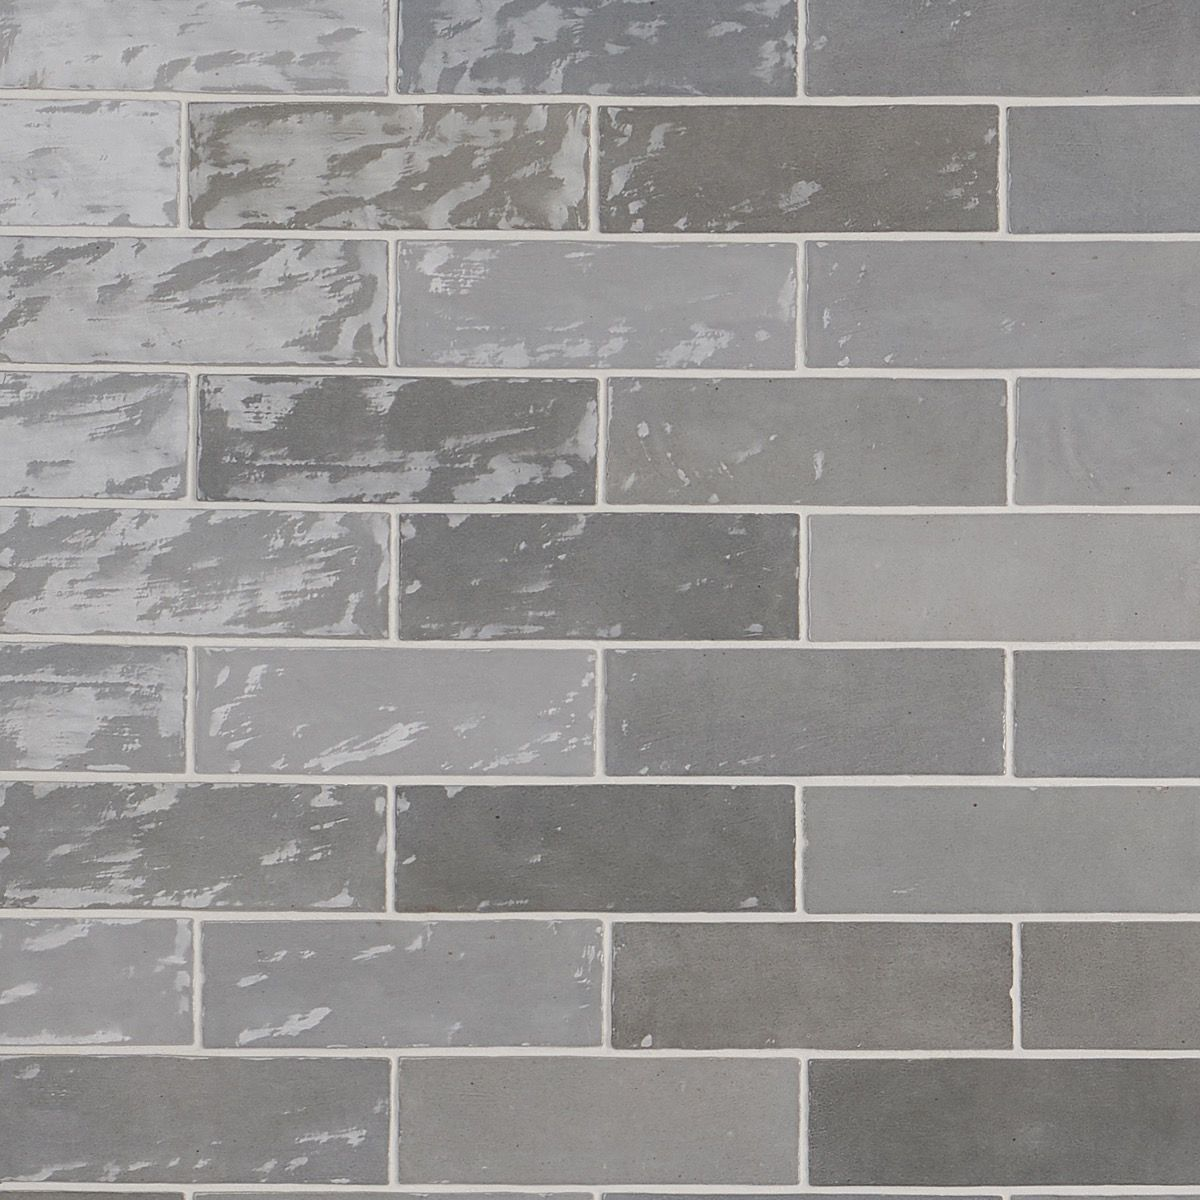 Portmore Gray 3x8 Glazed Ceramic Tile